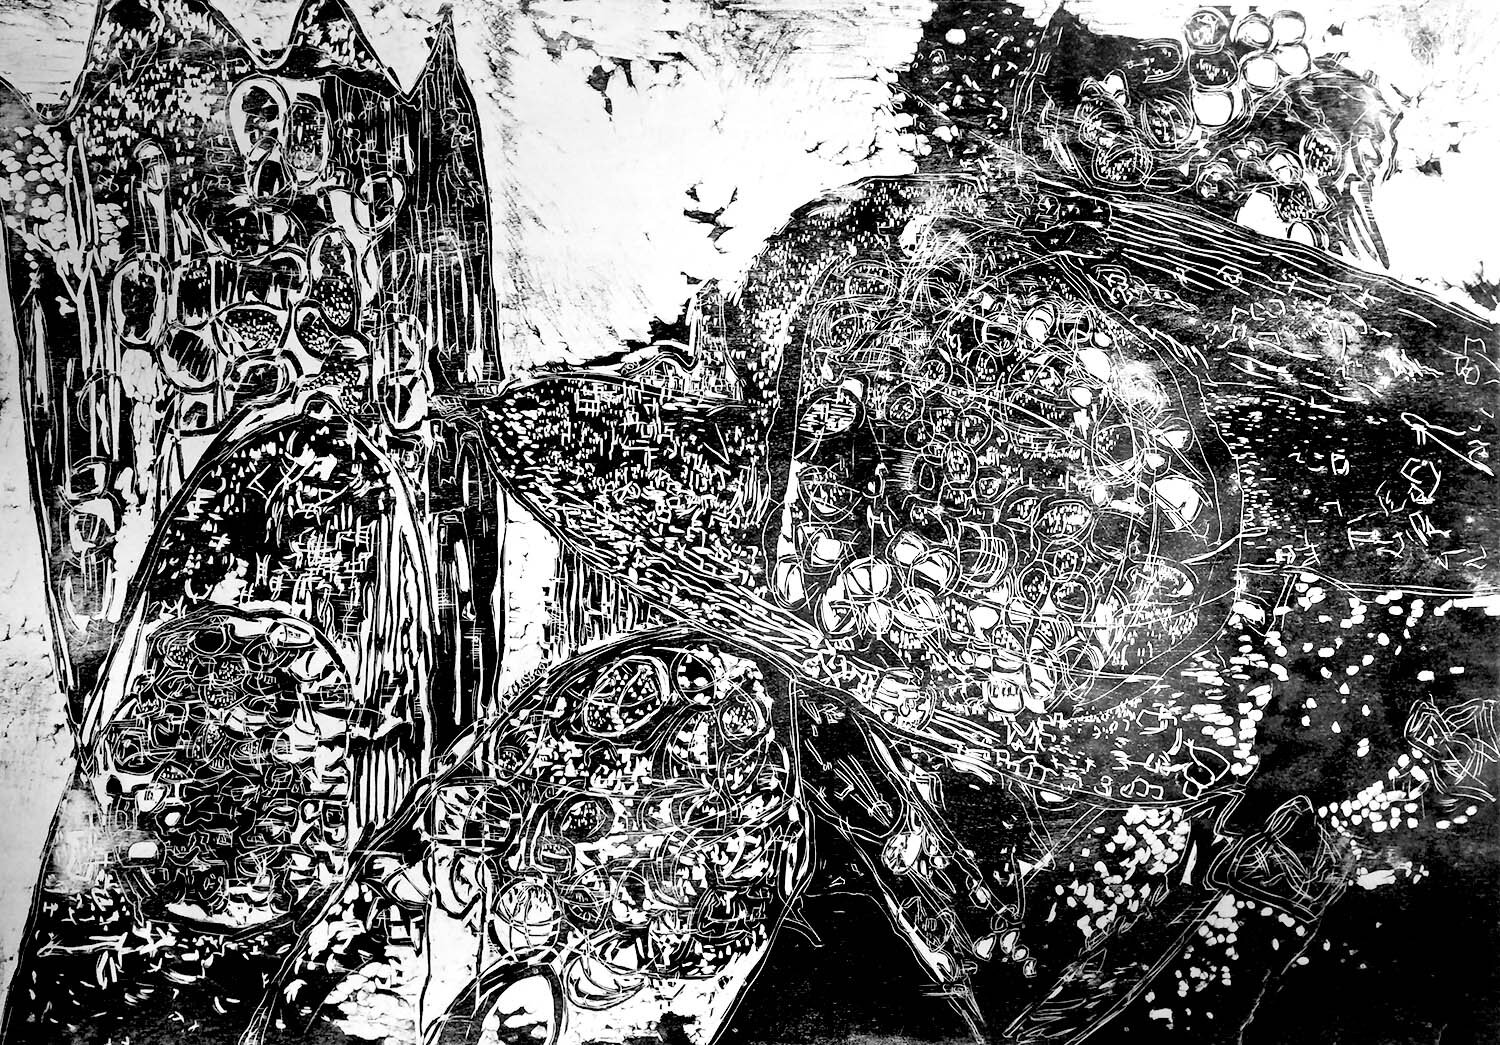 Gyroid, ed. 1/5, hand-printed woodcut on paper, 42 x 60 in.